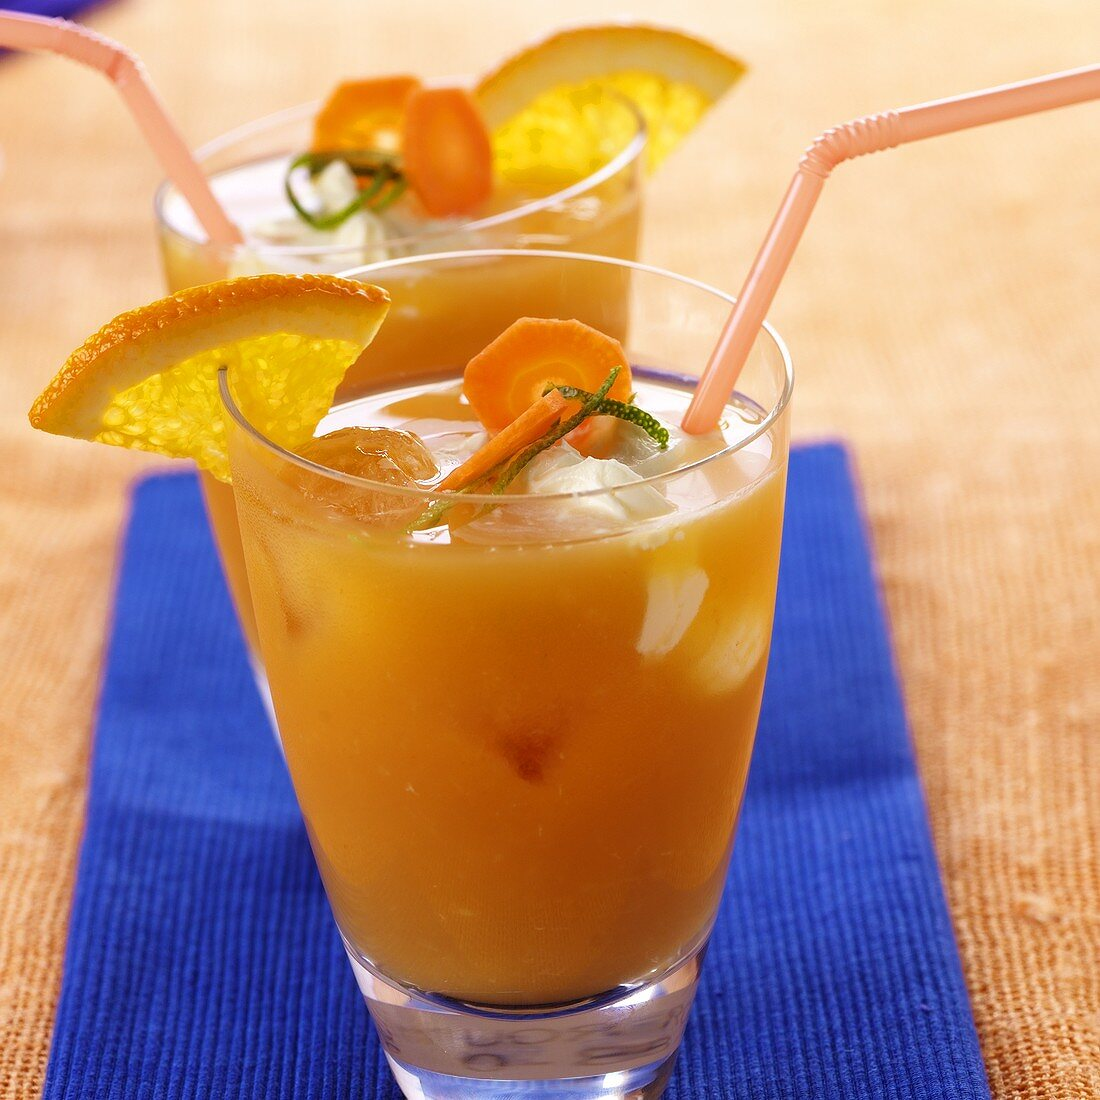 Carrot and orange drink